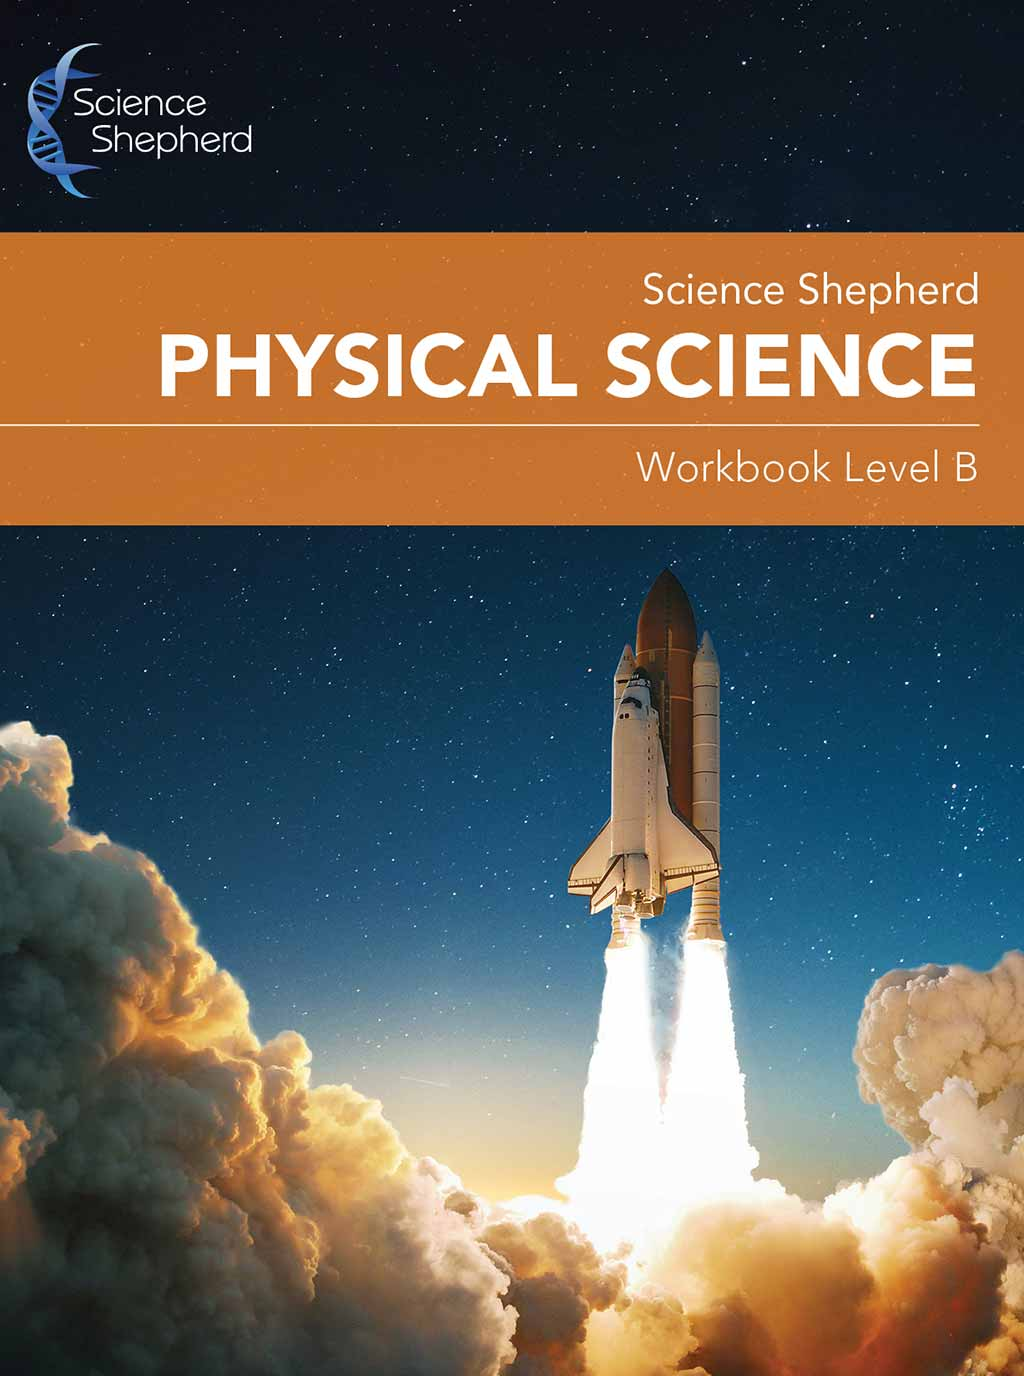 Homeschool Physical Science program Workbook Level B cover